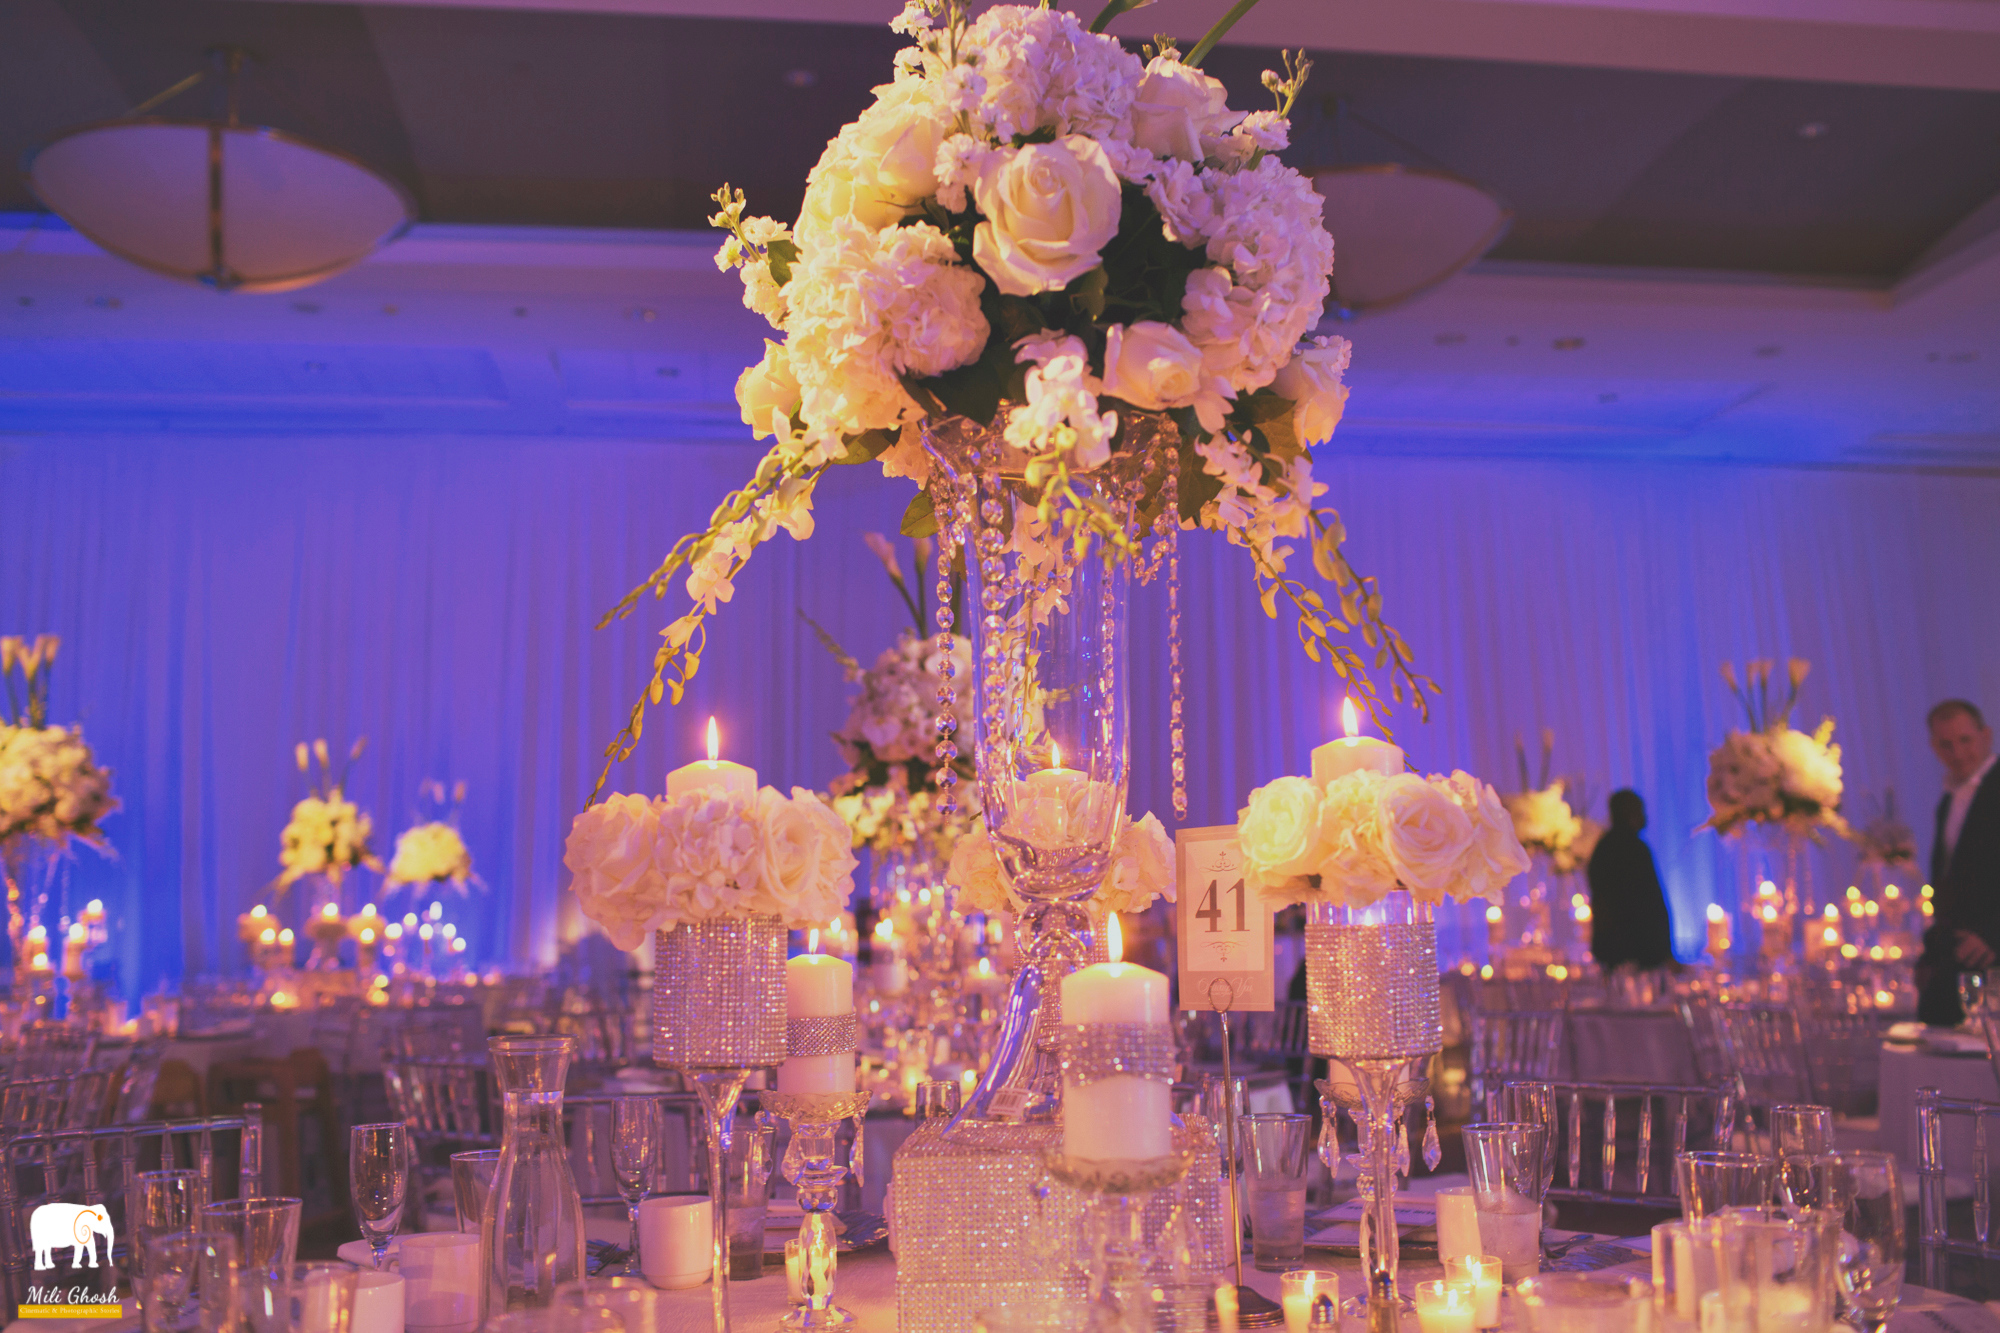 Copy of WHITE RECEPTION FLOWERS